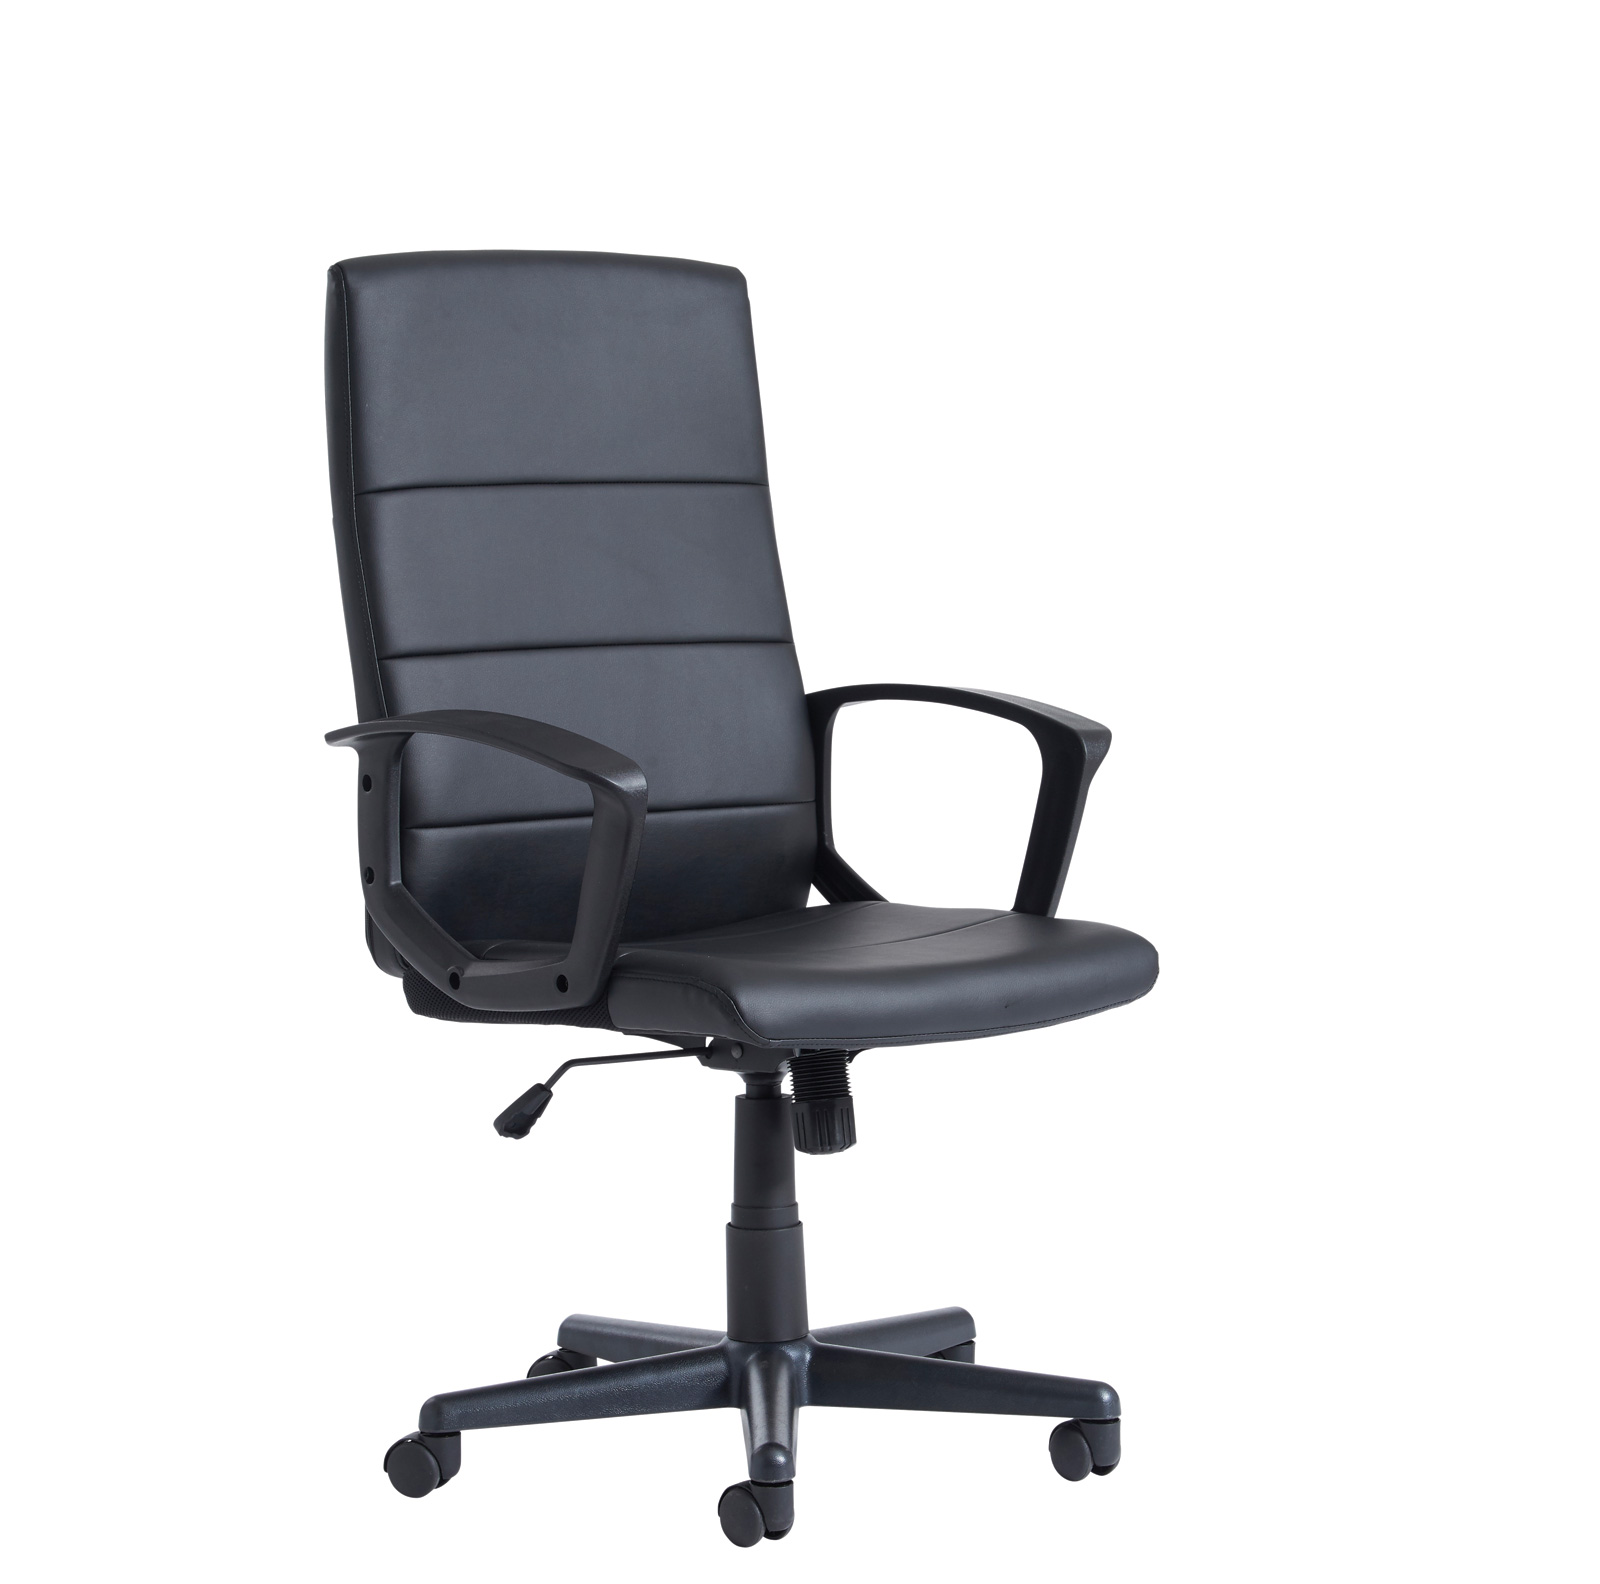 Ascona manager chair - black